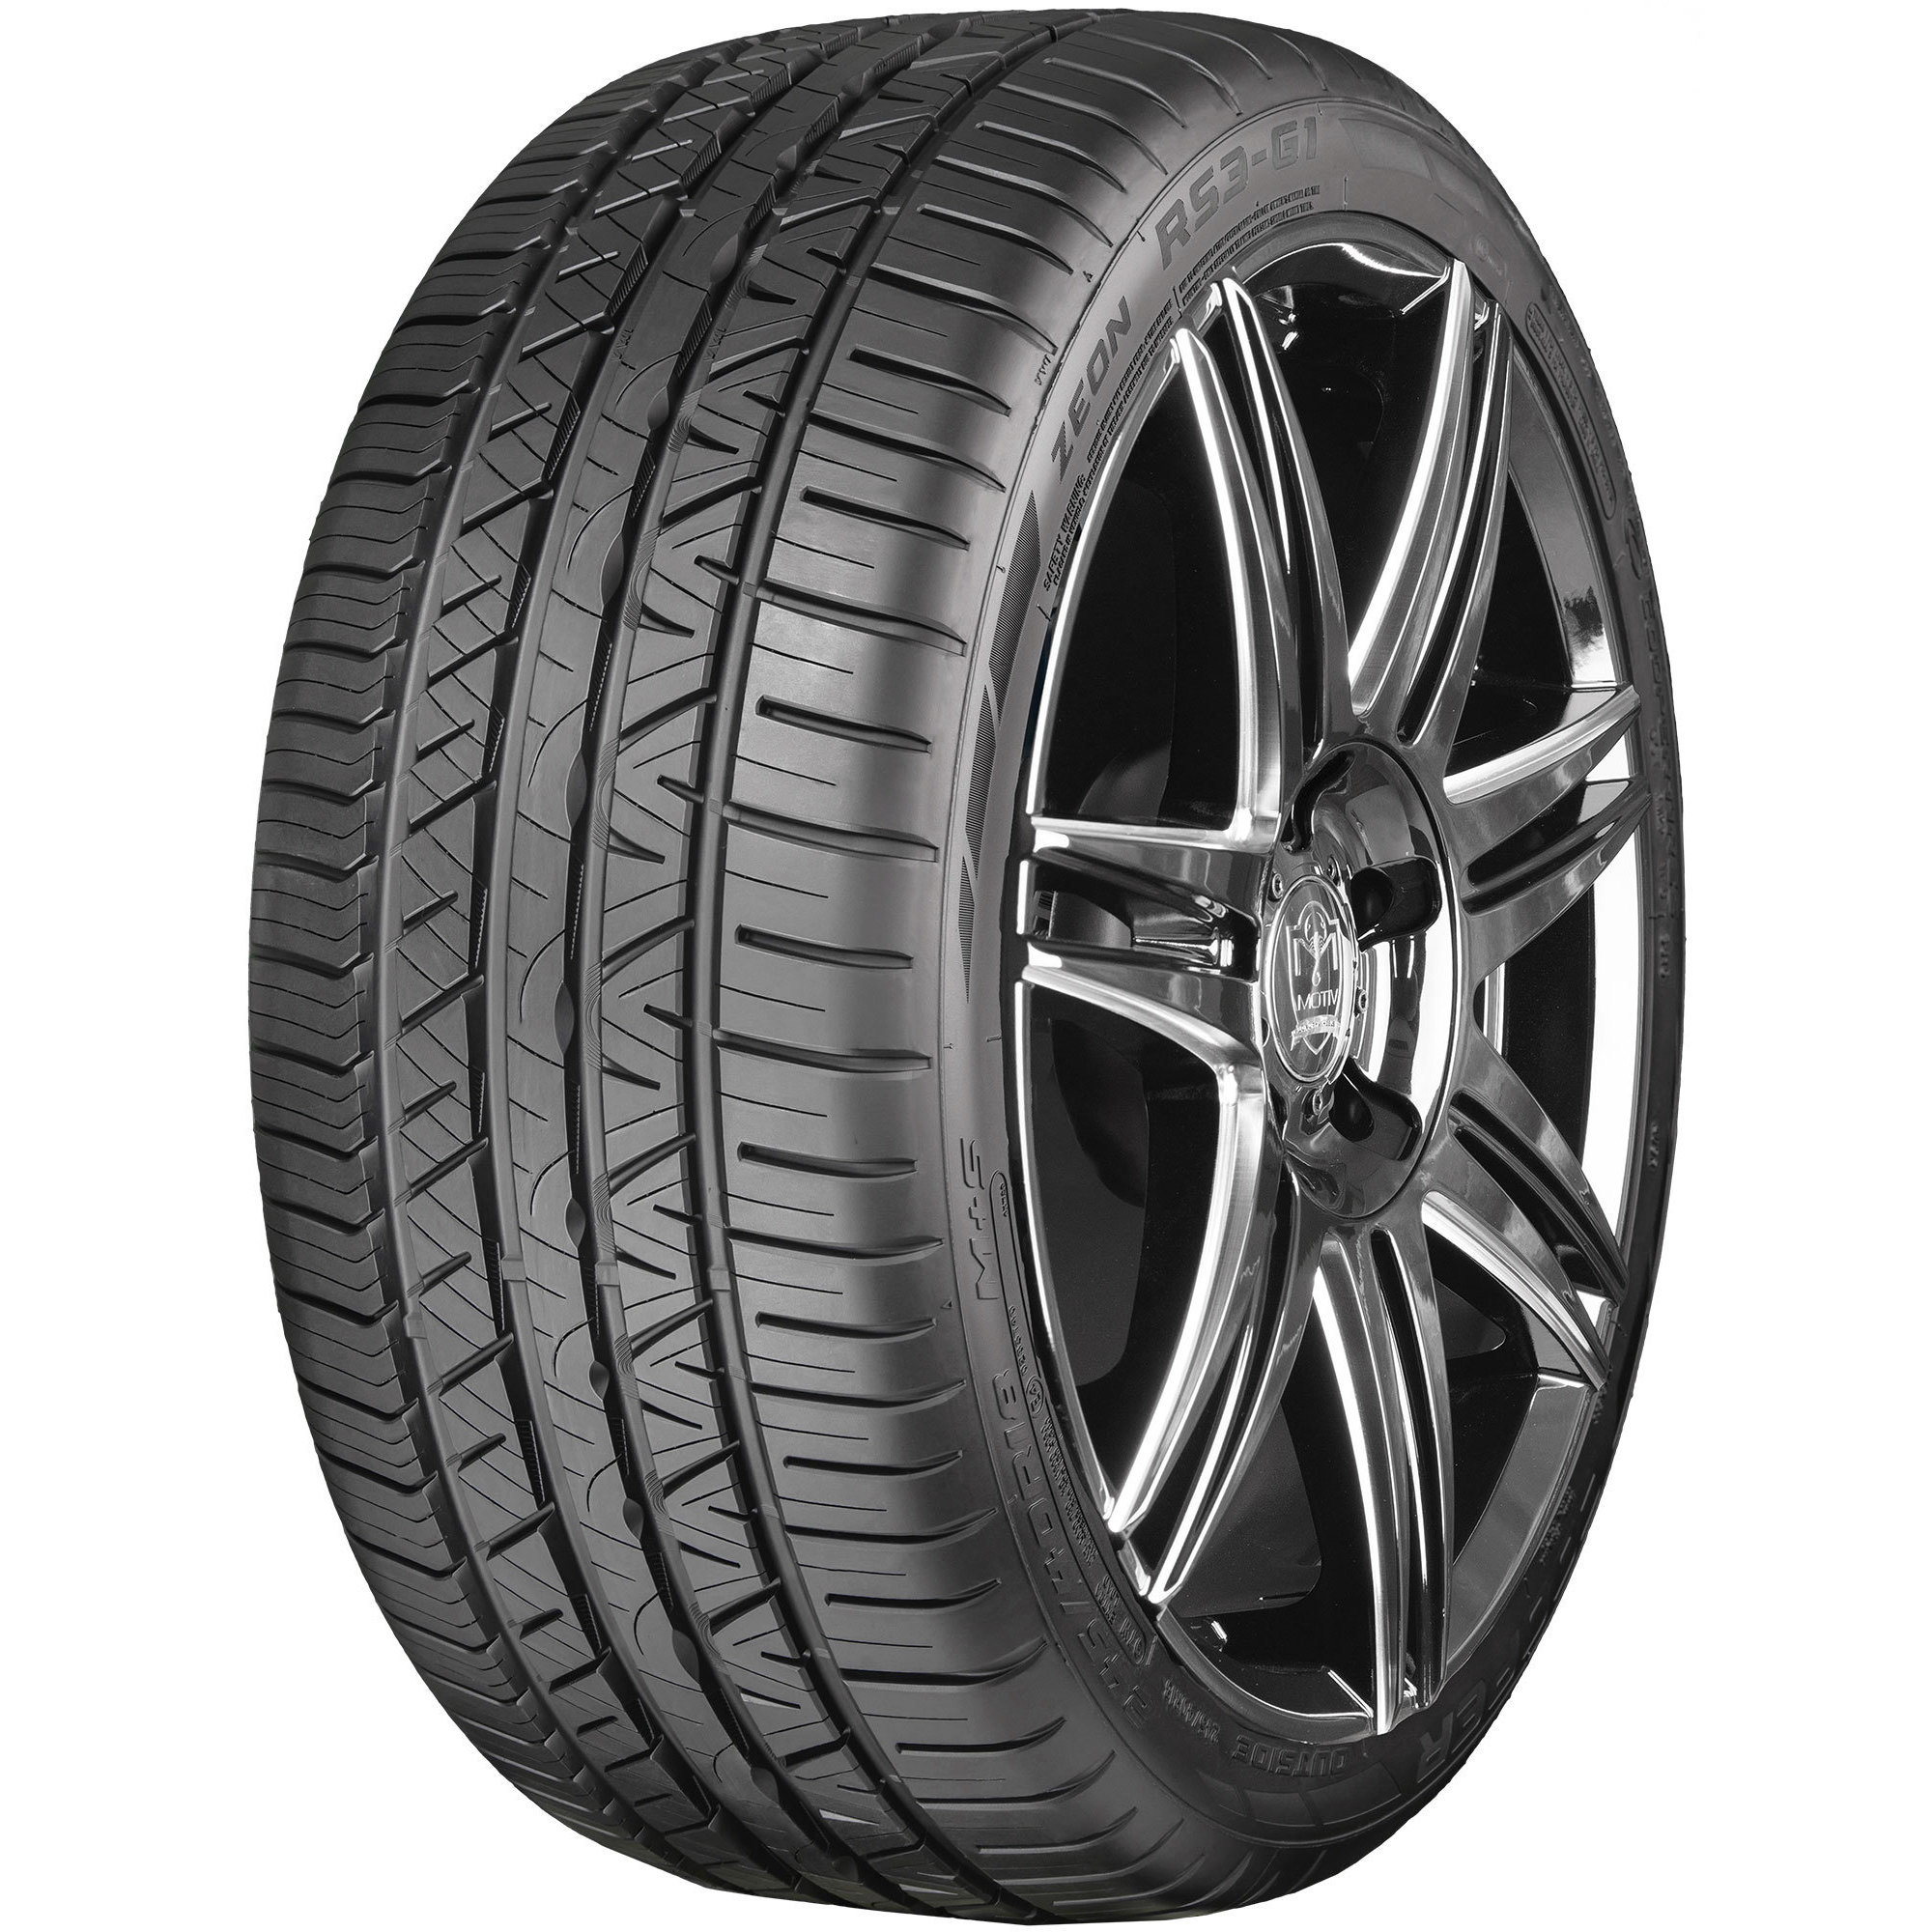 Cooper Rs3 A Review >> Cooper Zeon Rs3 G1 Tirebuyer